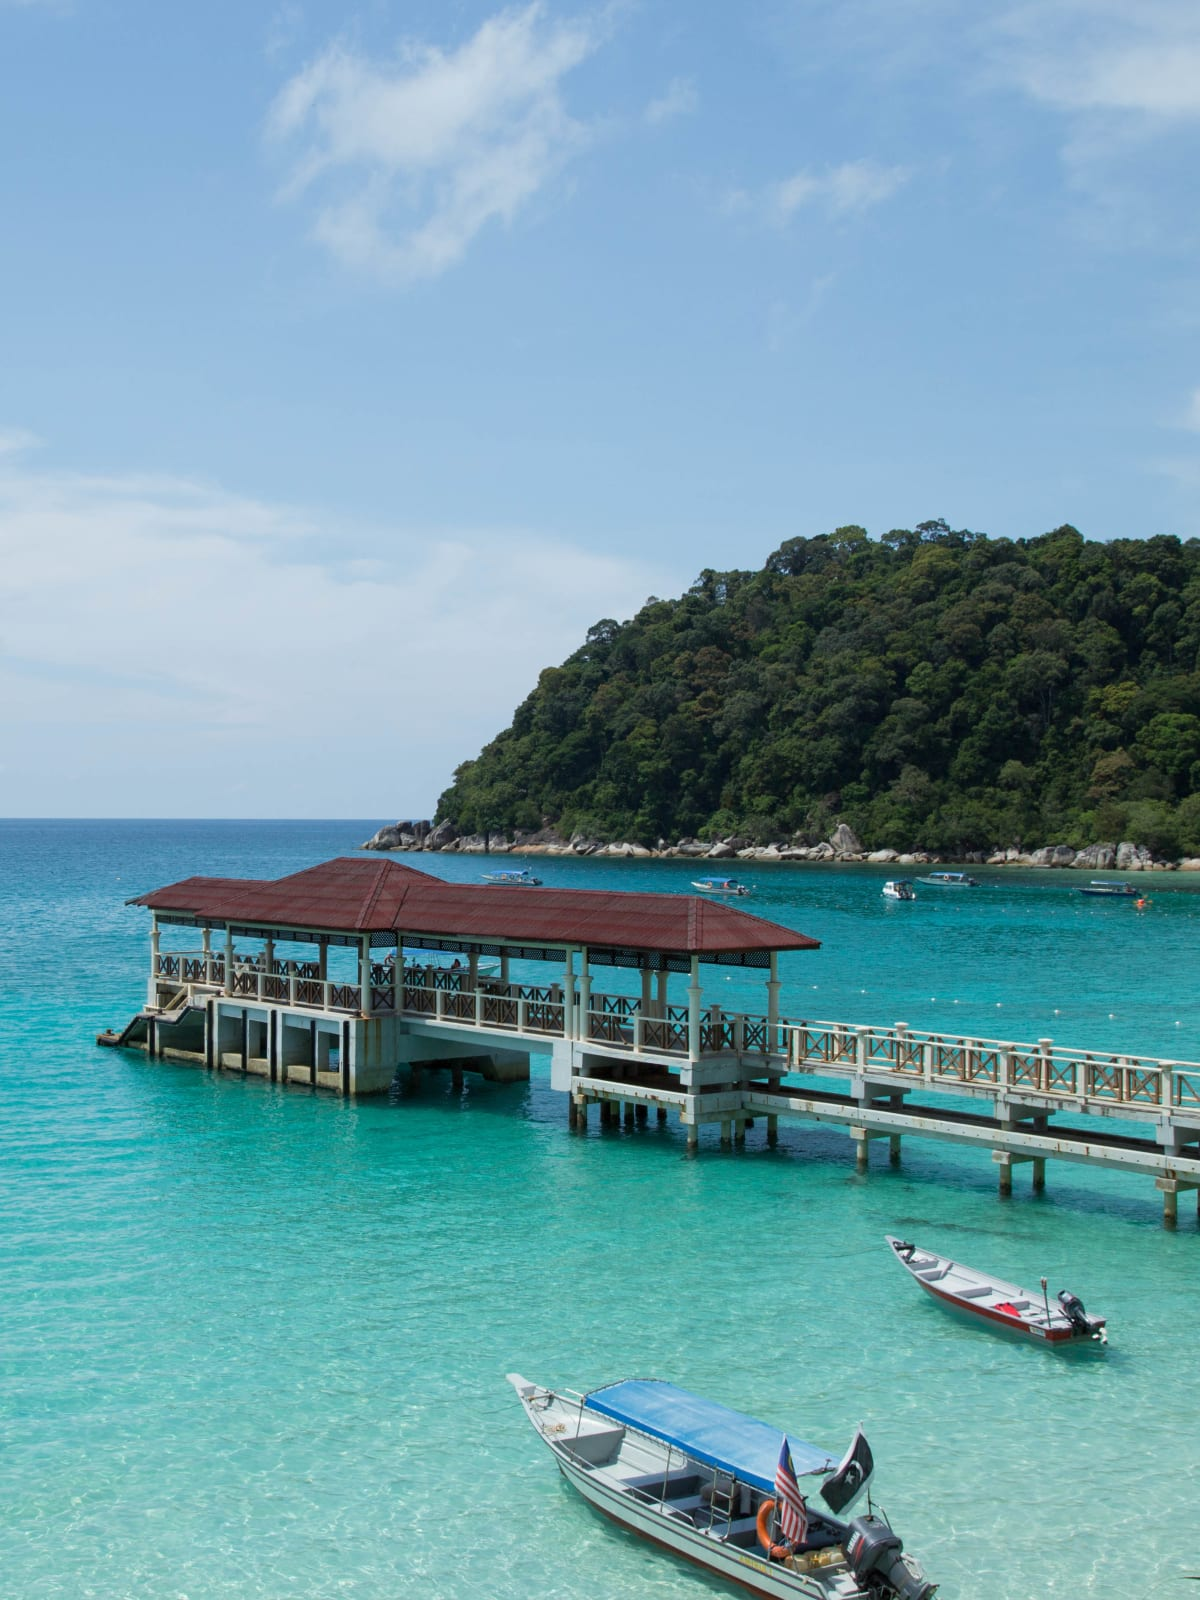 Pulau Perhentian Tour Packages Holidays 2020 2021 Tripfez Travel